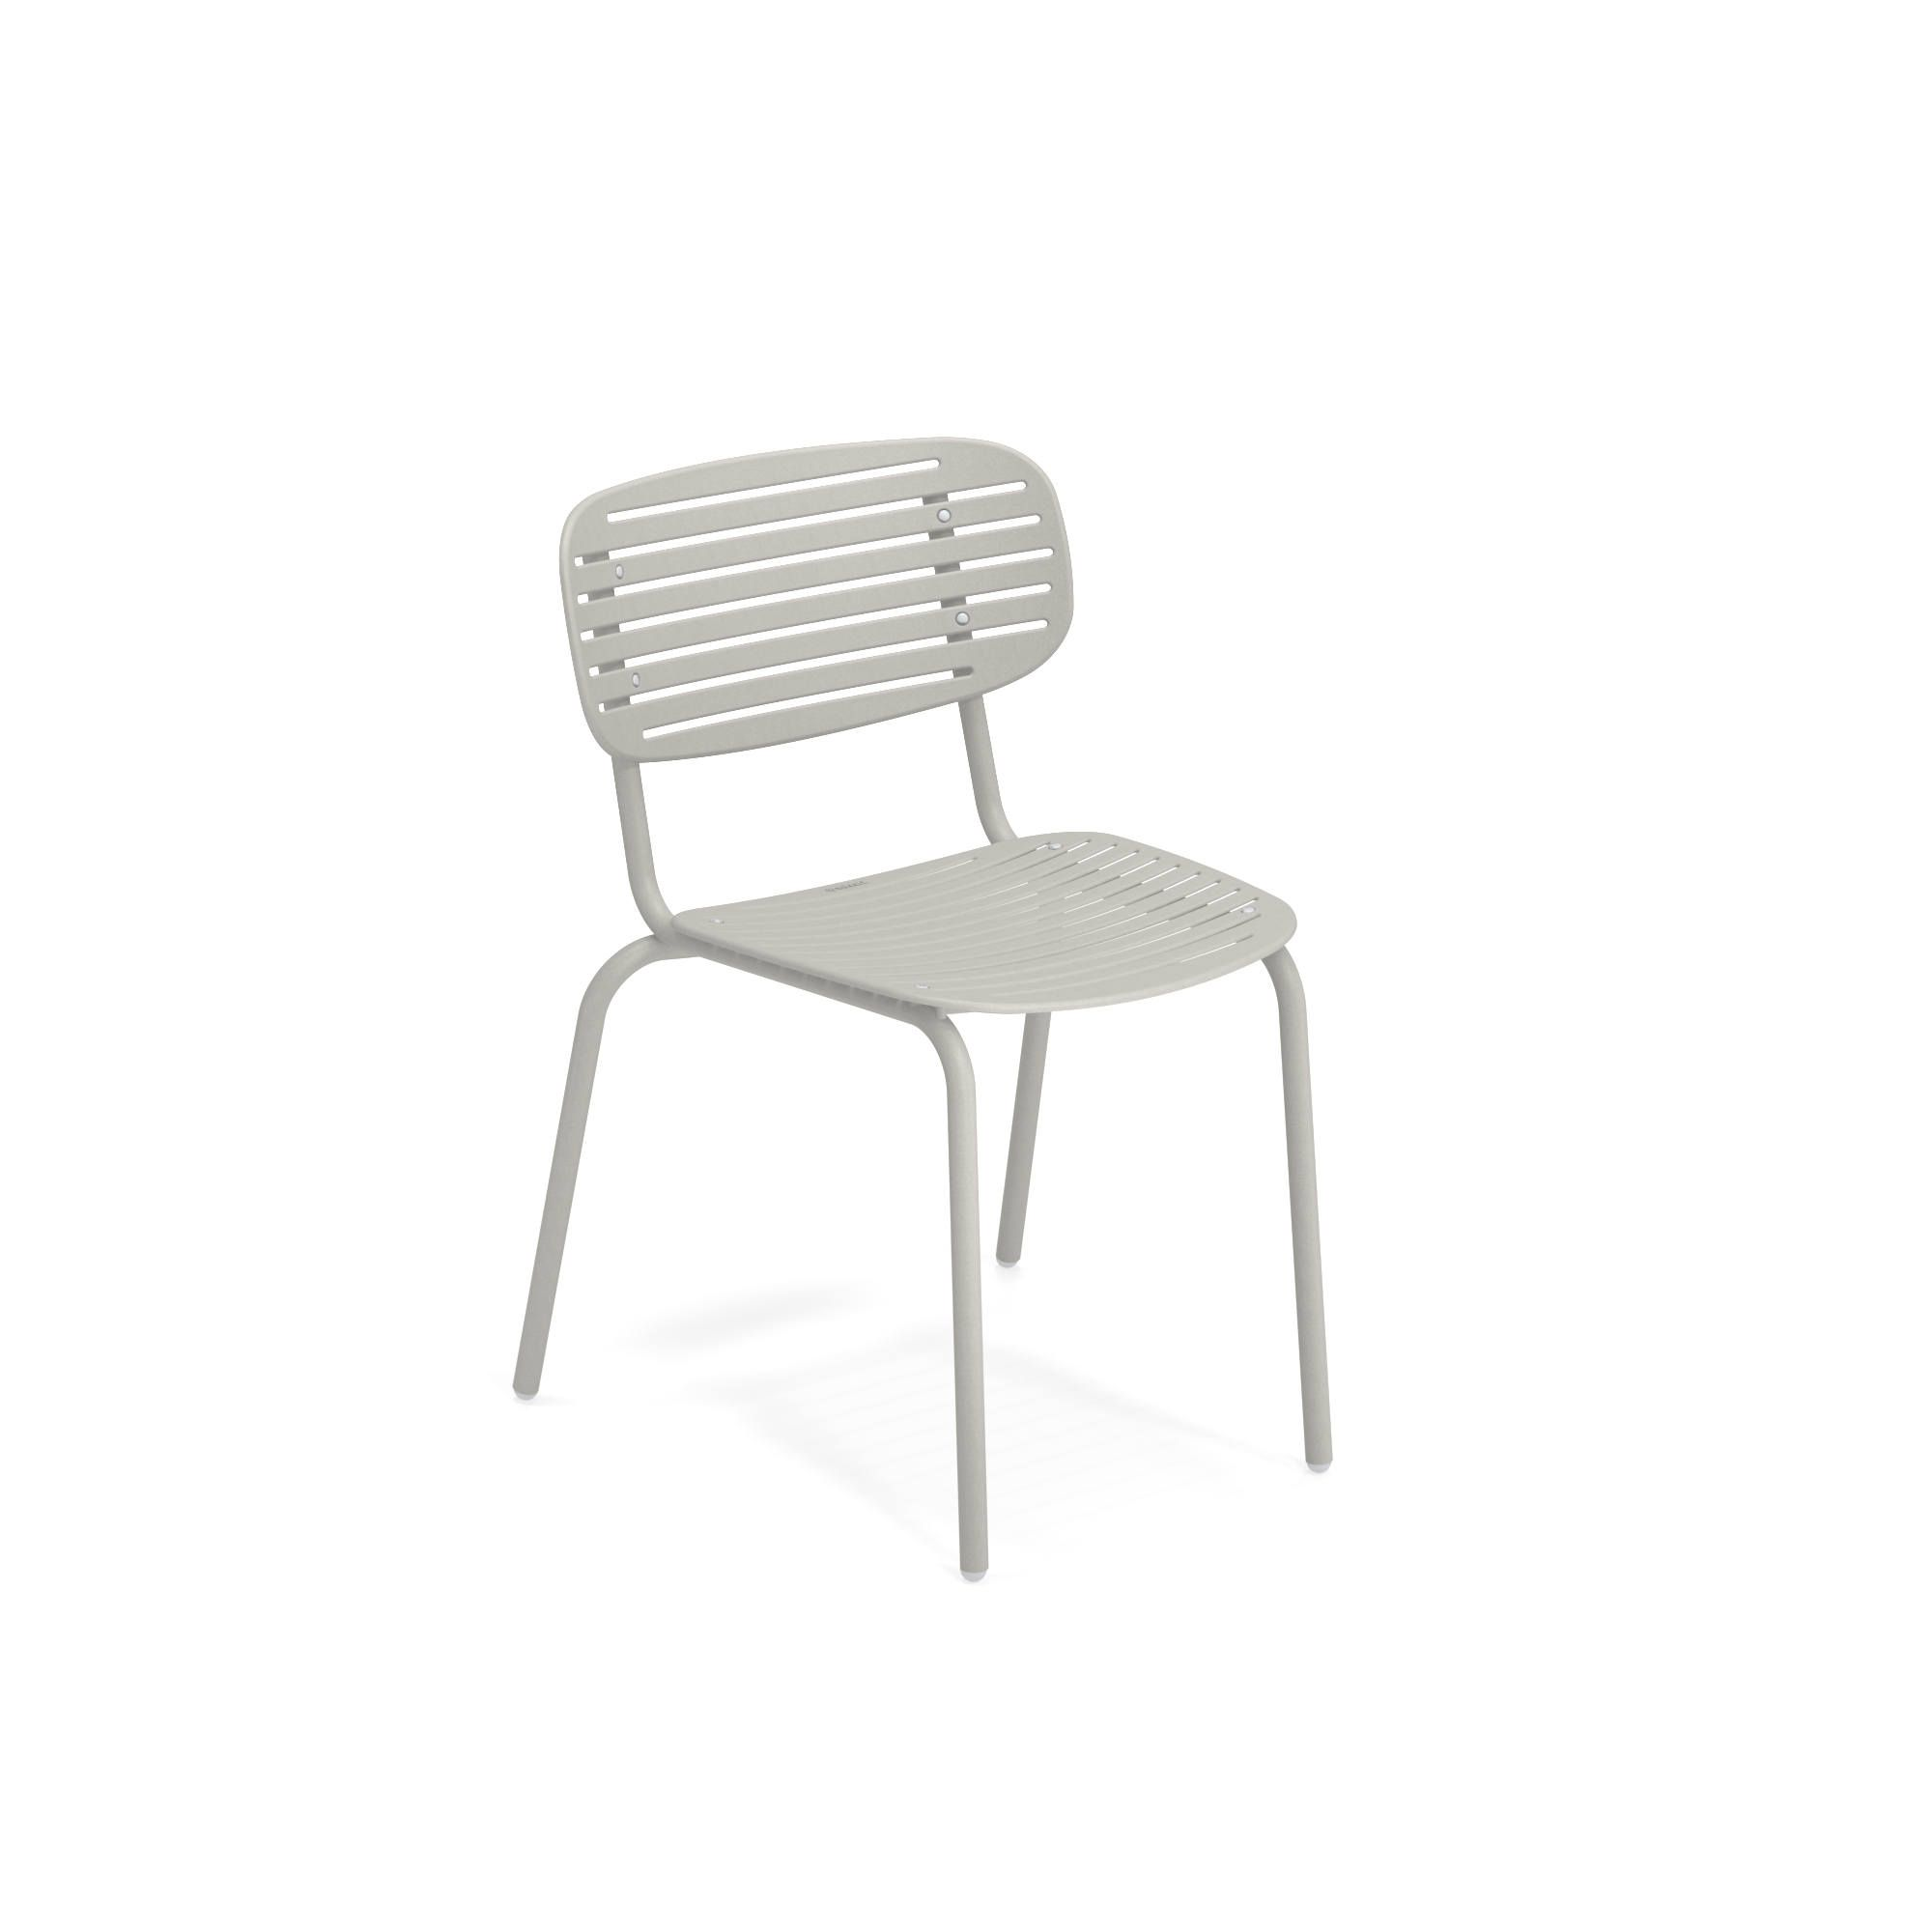 emuamericas, llc 639-73 chair, side, stacking, outdoor